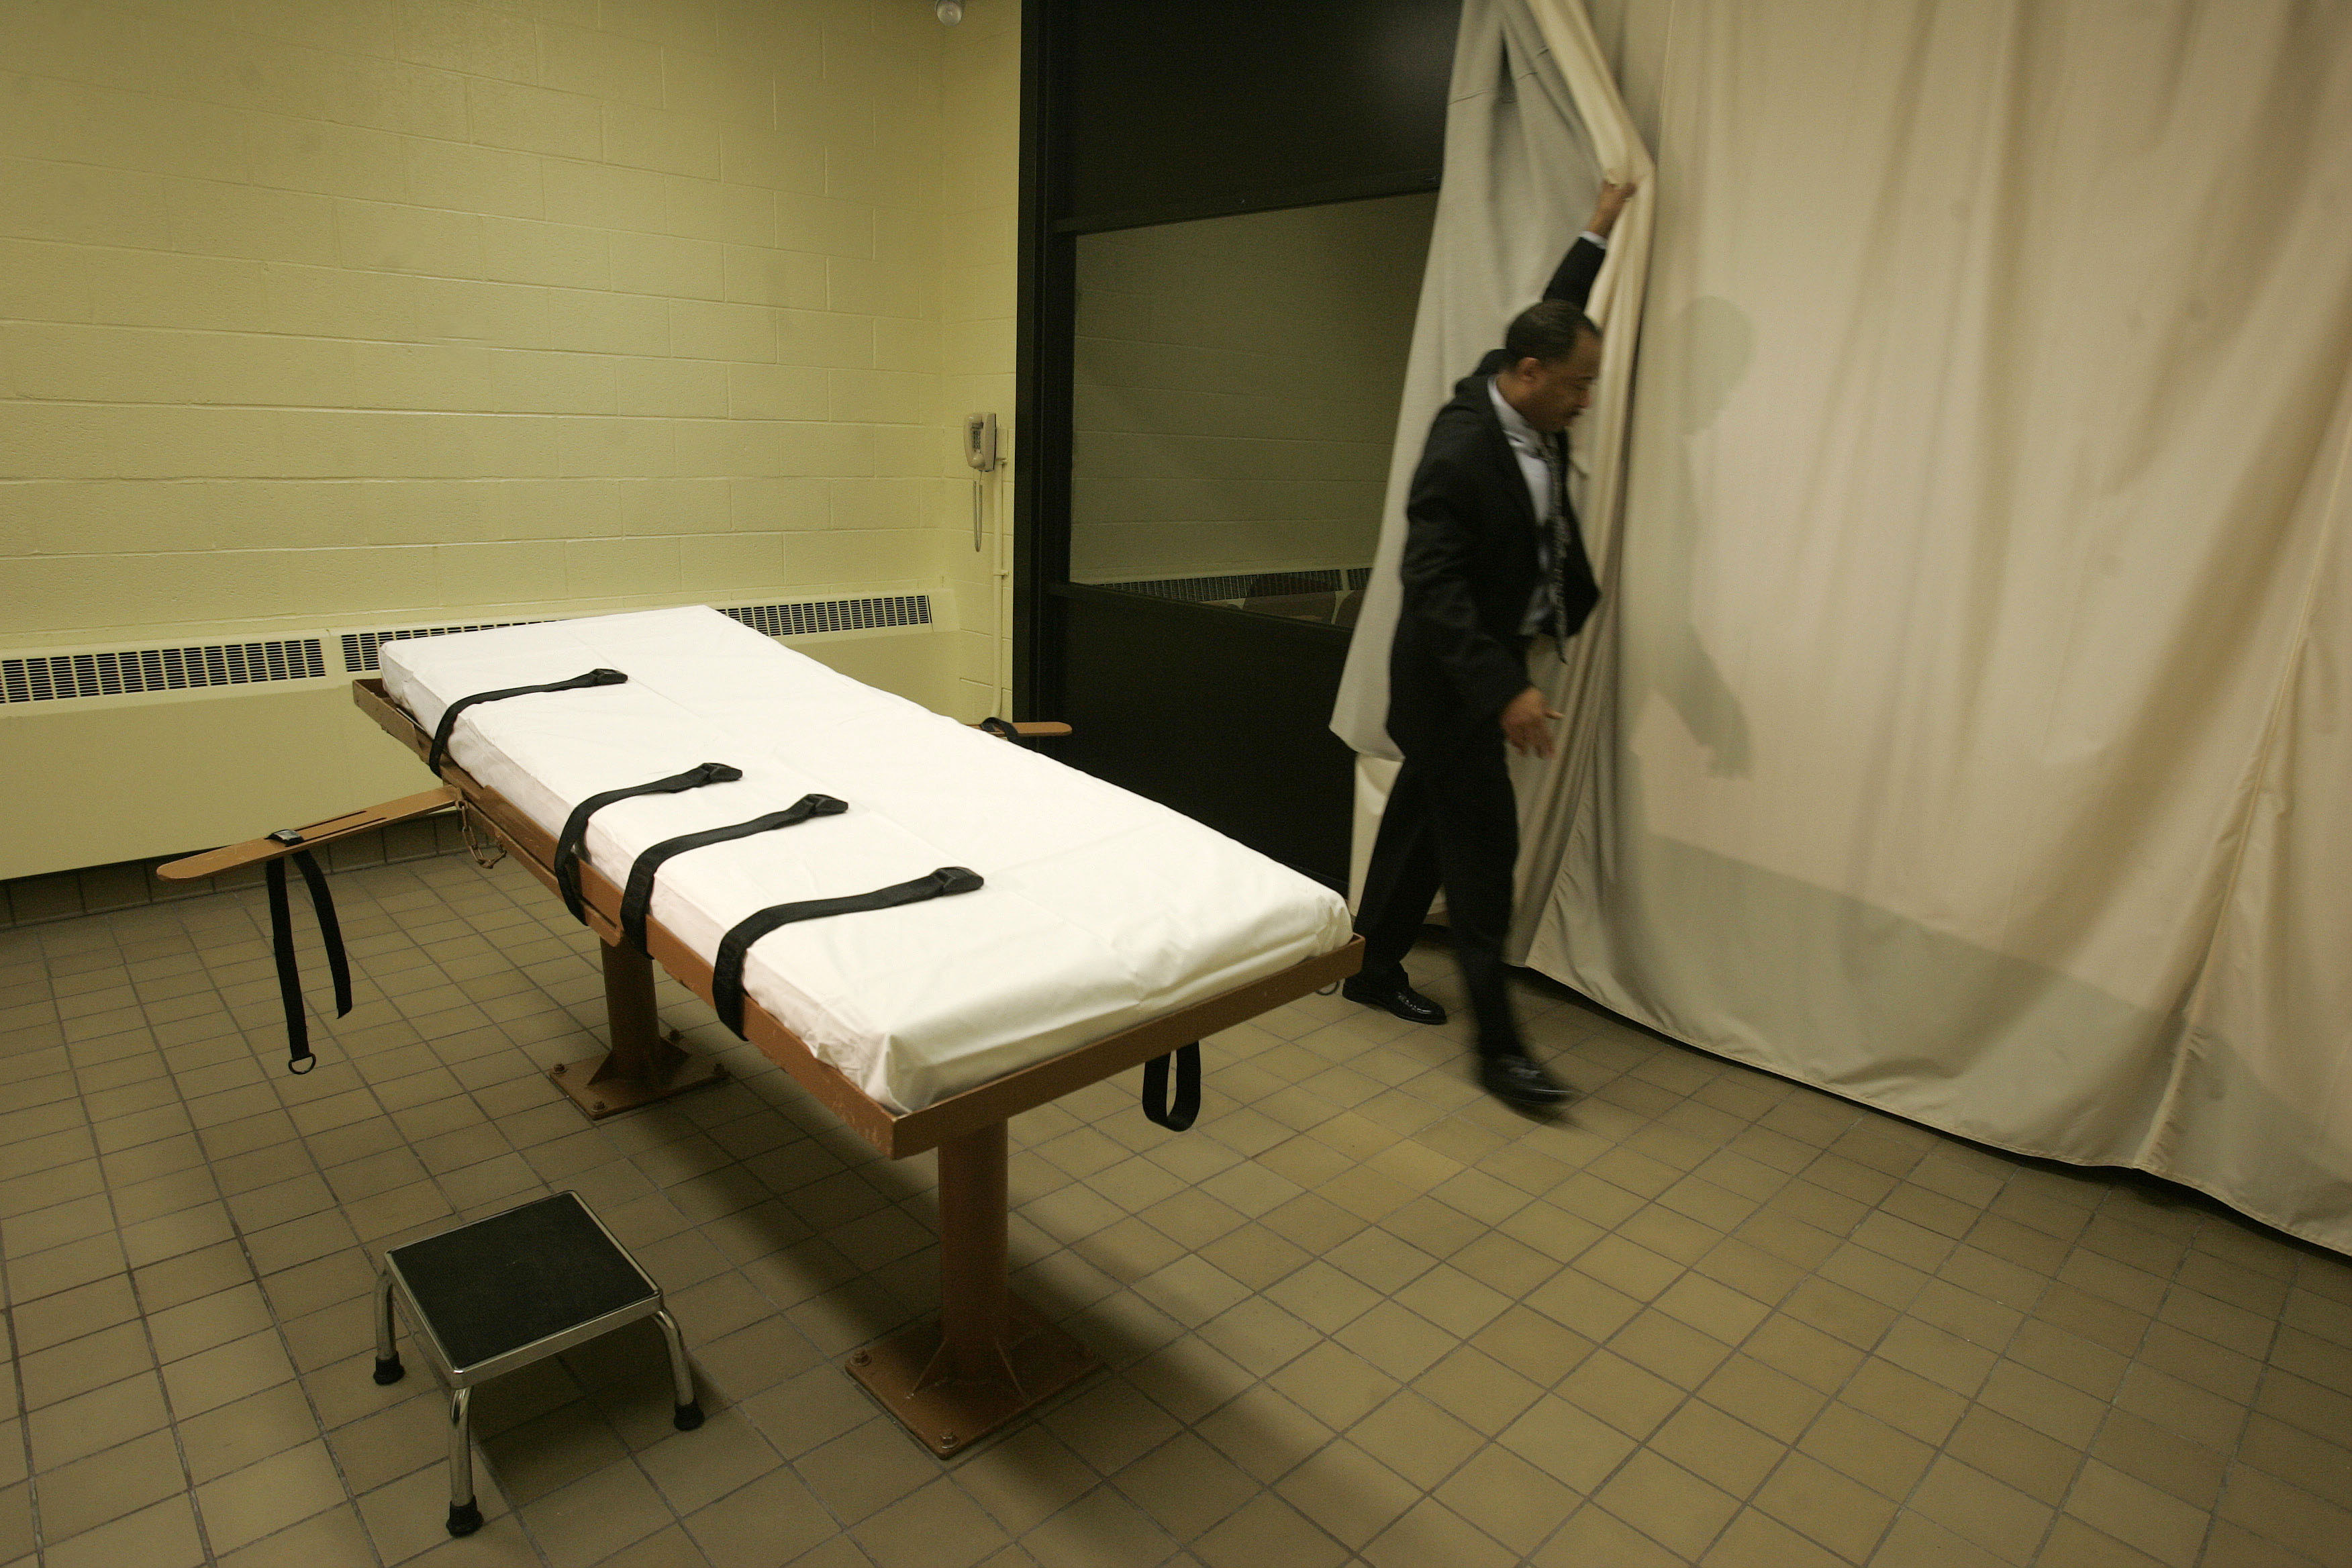 pemThe-death-chamber-at-the-Southern-Ohio-Correctional-Facility-in-Lucasville-Ohio.-AP-ImagesKiichiro-Sato-Fileemp